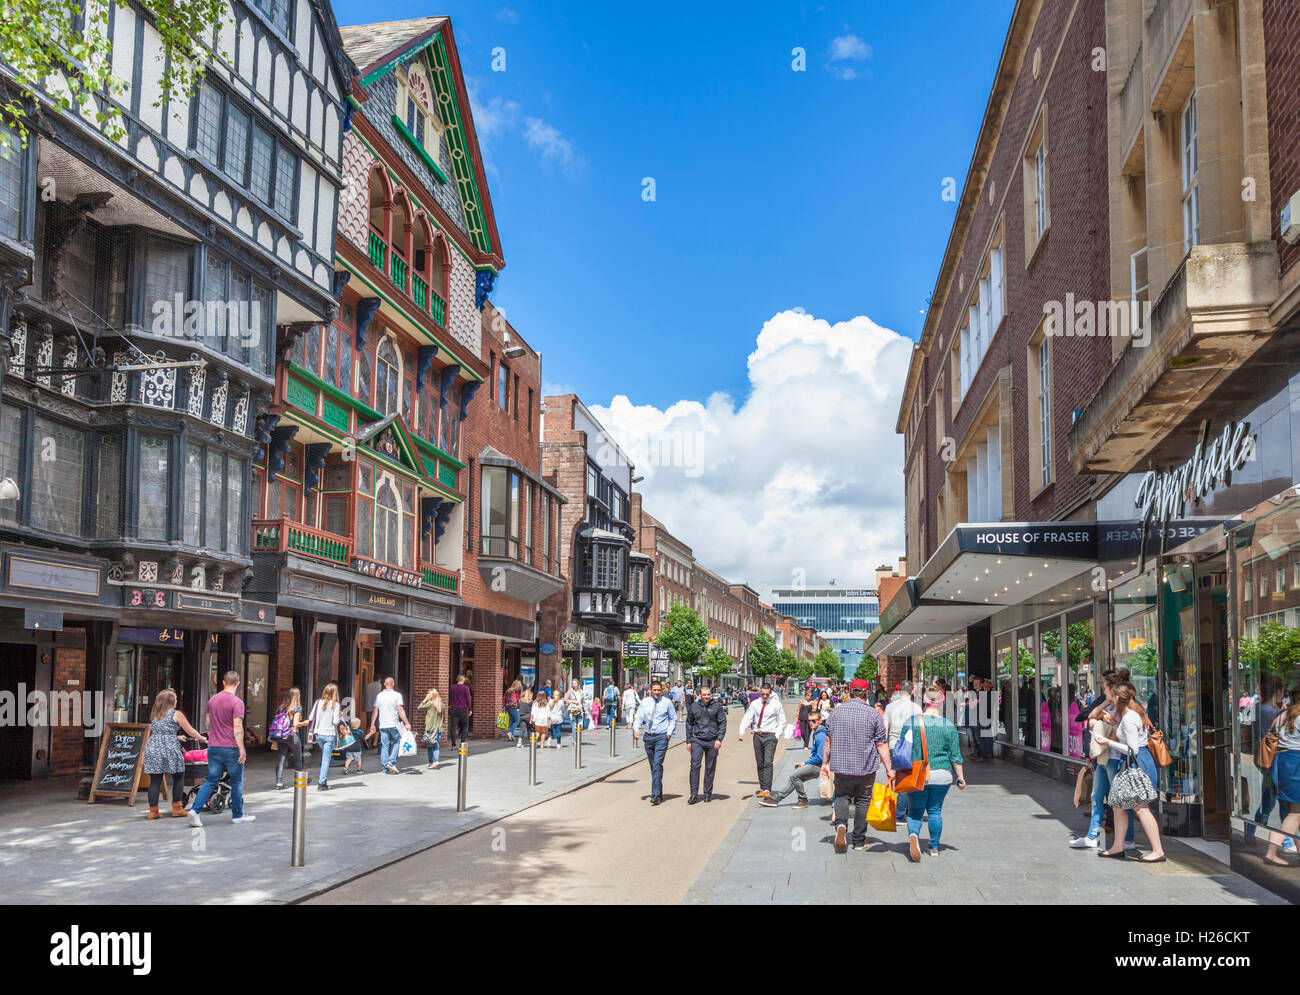 High street shops and historic buildings Exeter City centre Exeter Devon England UK GB EU Europe - Stock Image